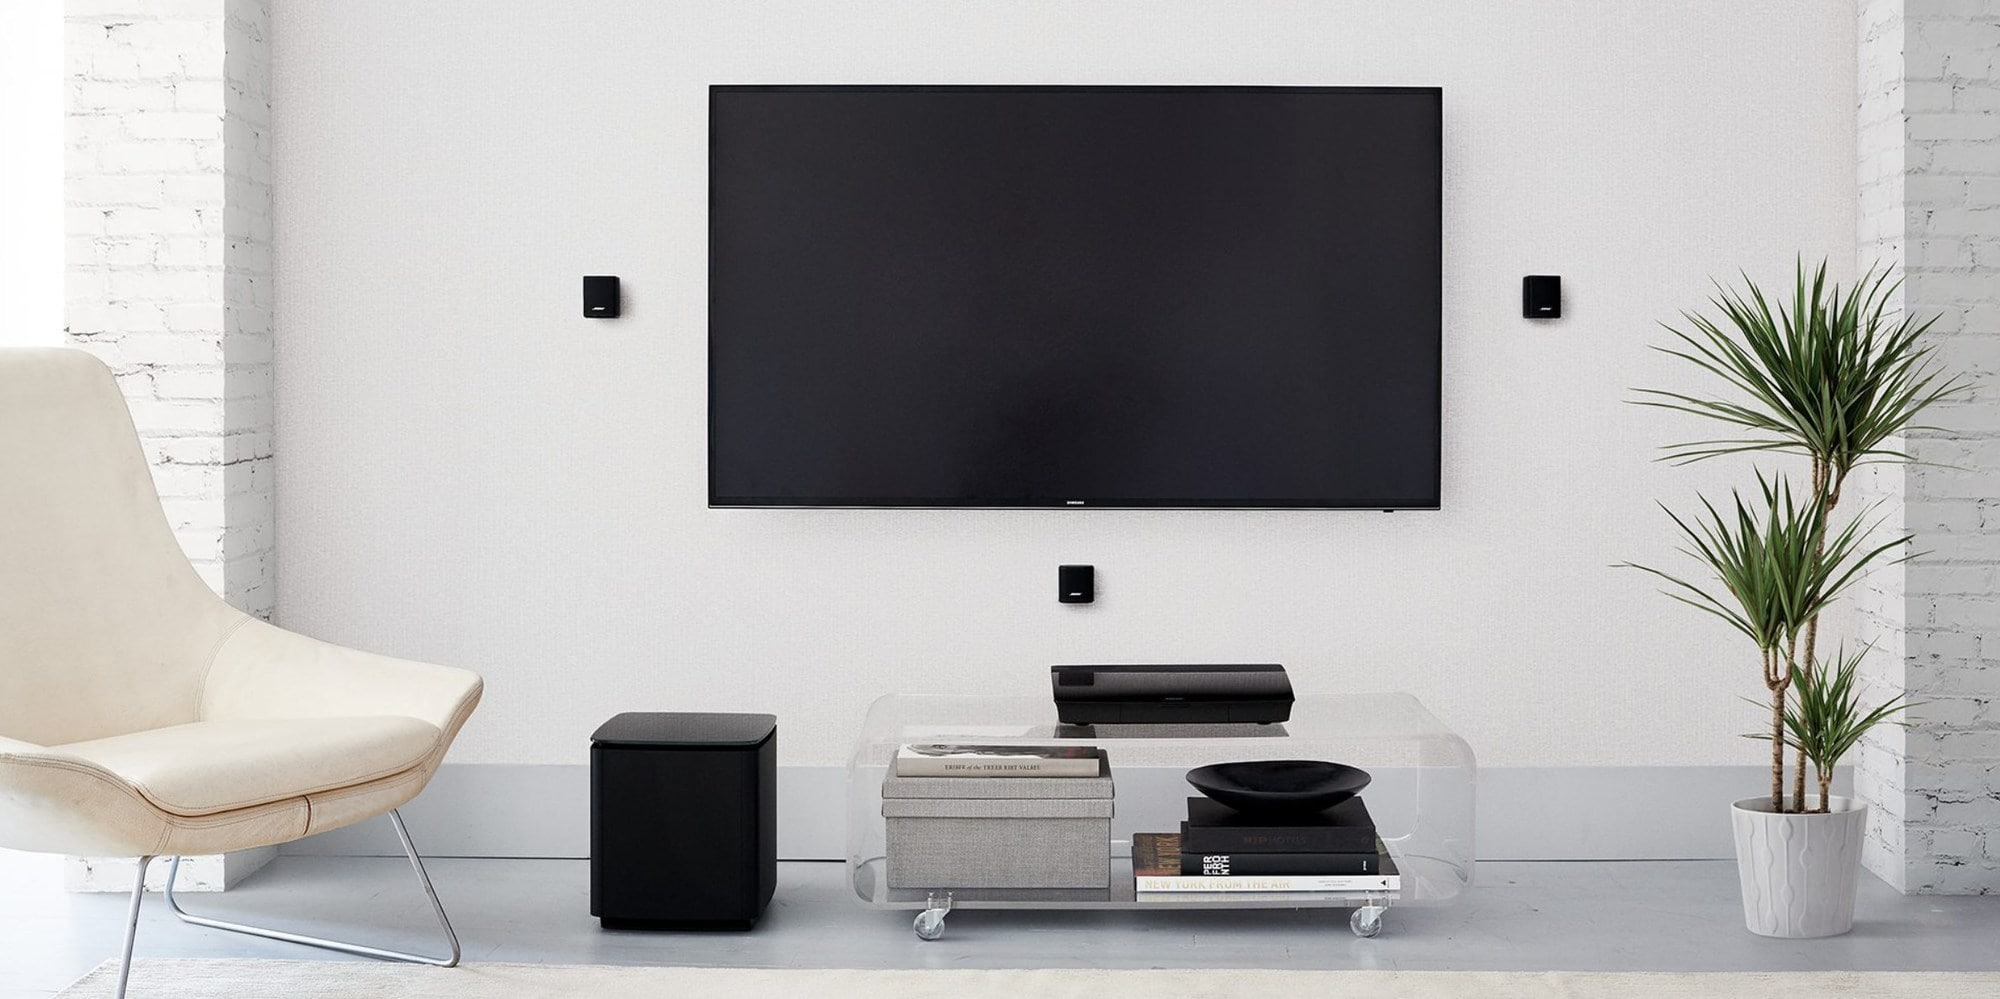 Bose Home Cinema Bose Lifestyle 550 Home Entertainment System Review